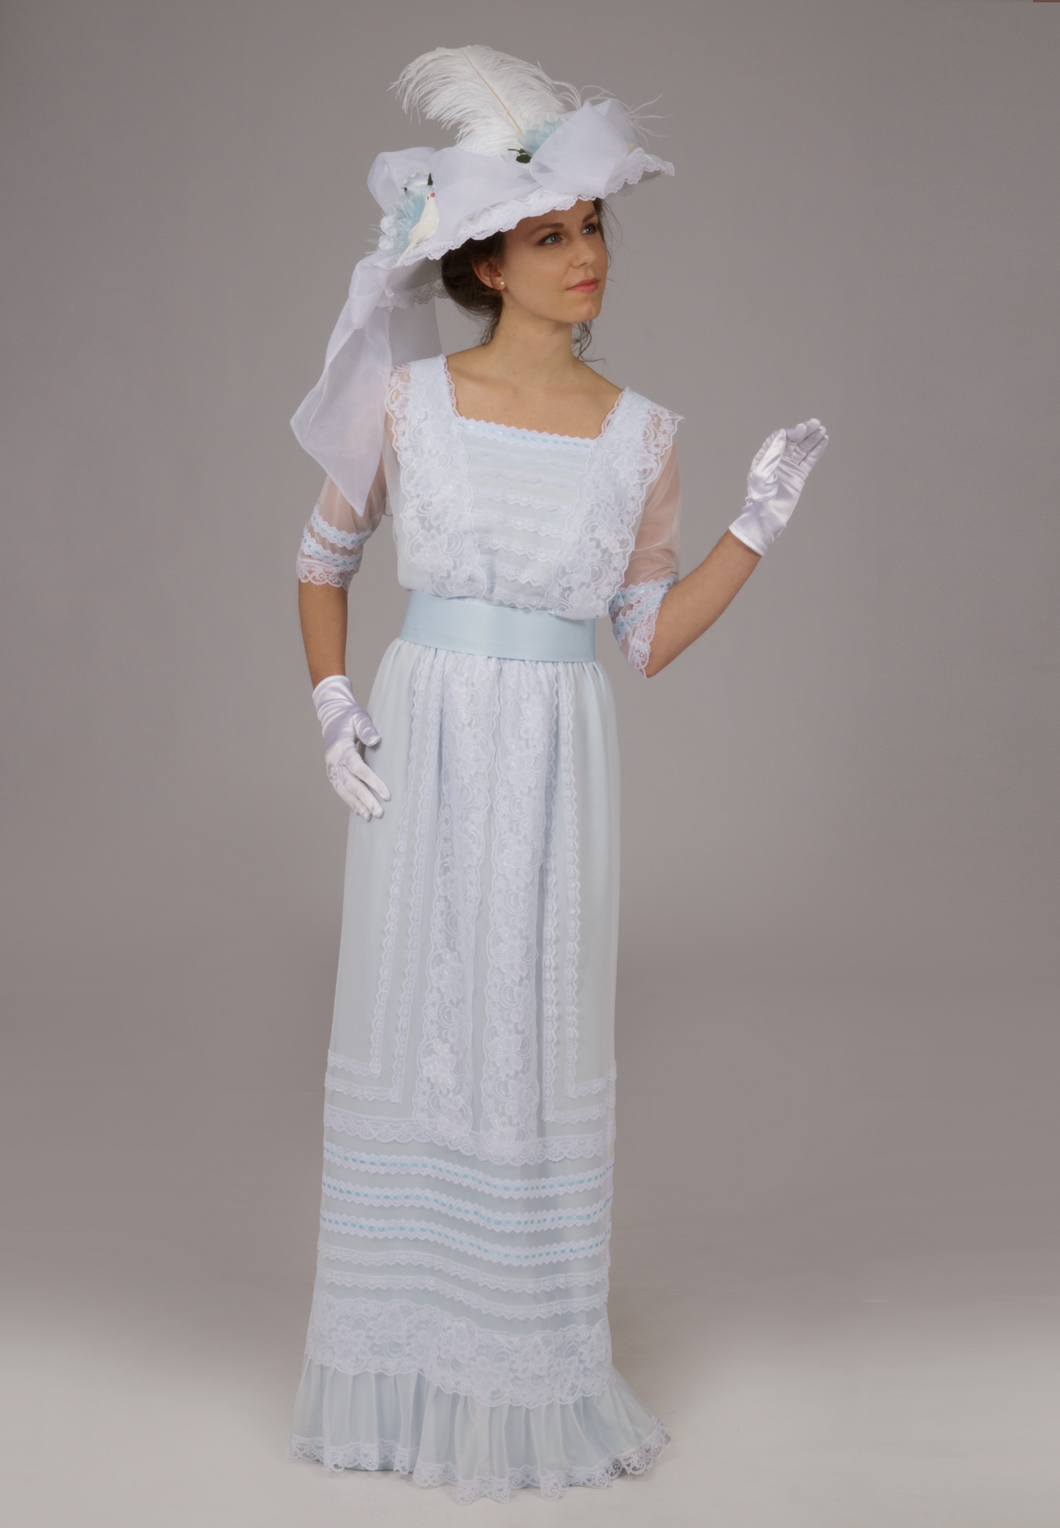 Estella Edwardian Dress Recollections